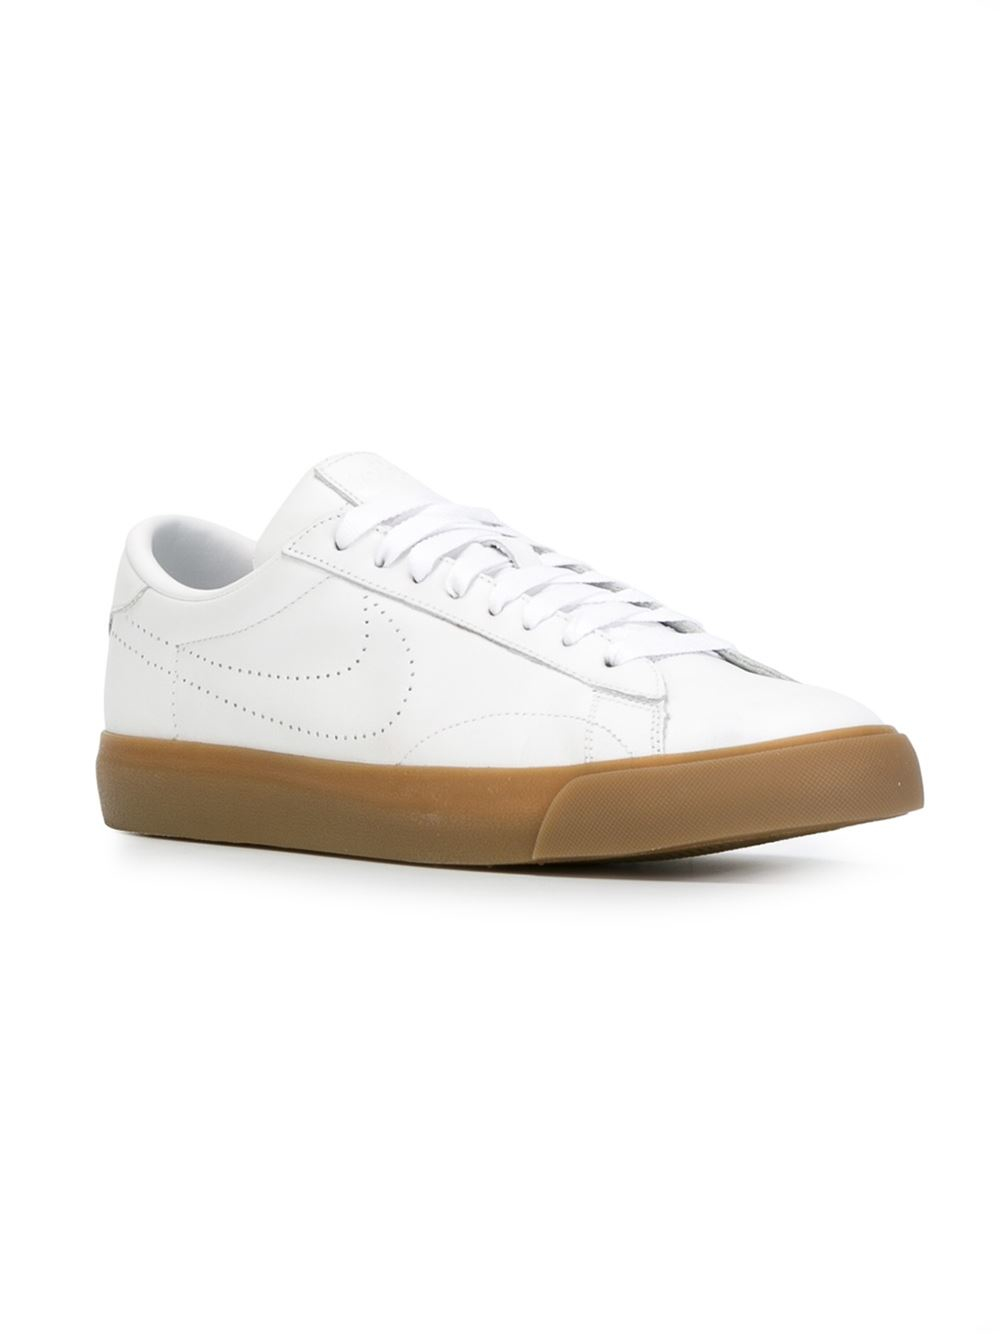 nike tennis classic ac sp sneakers in white lyst